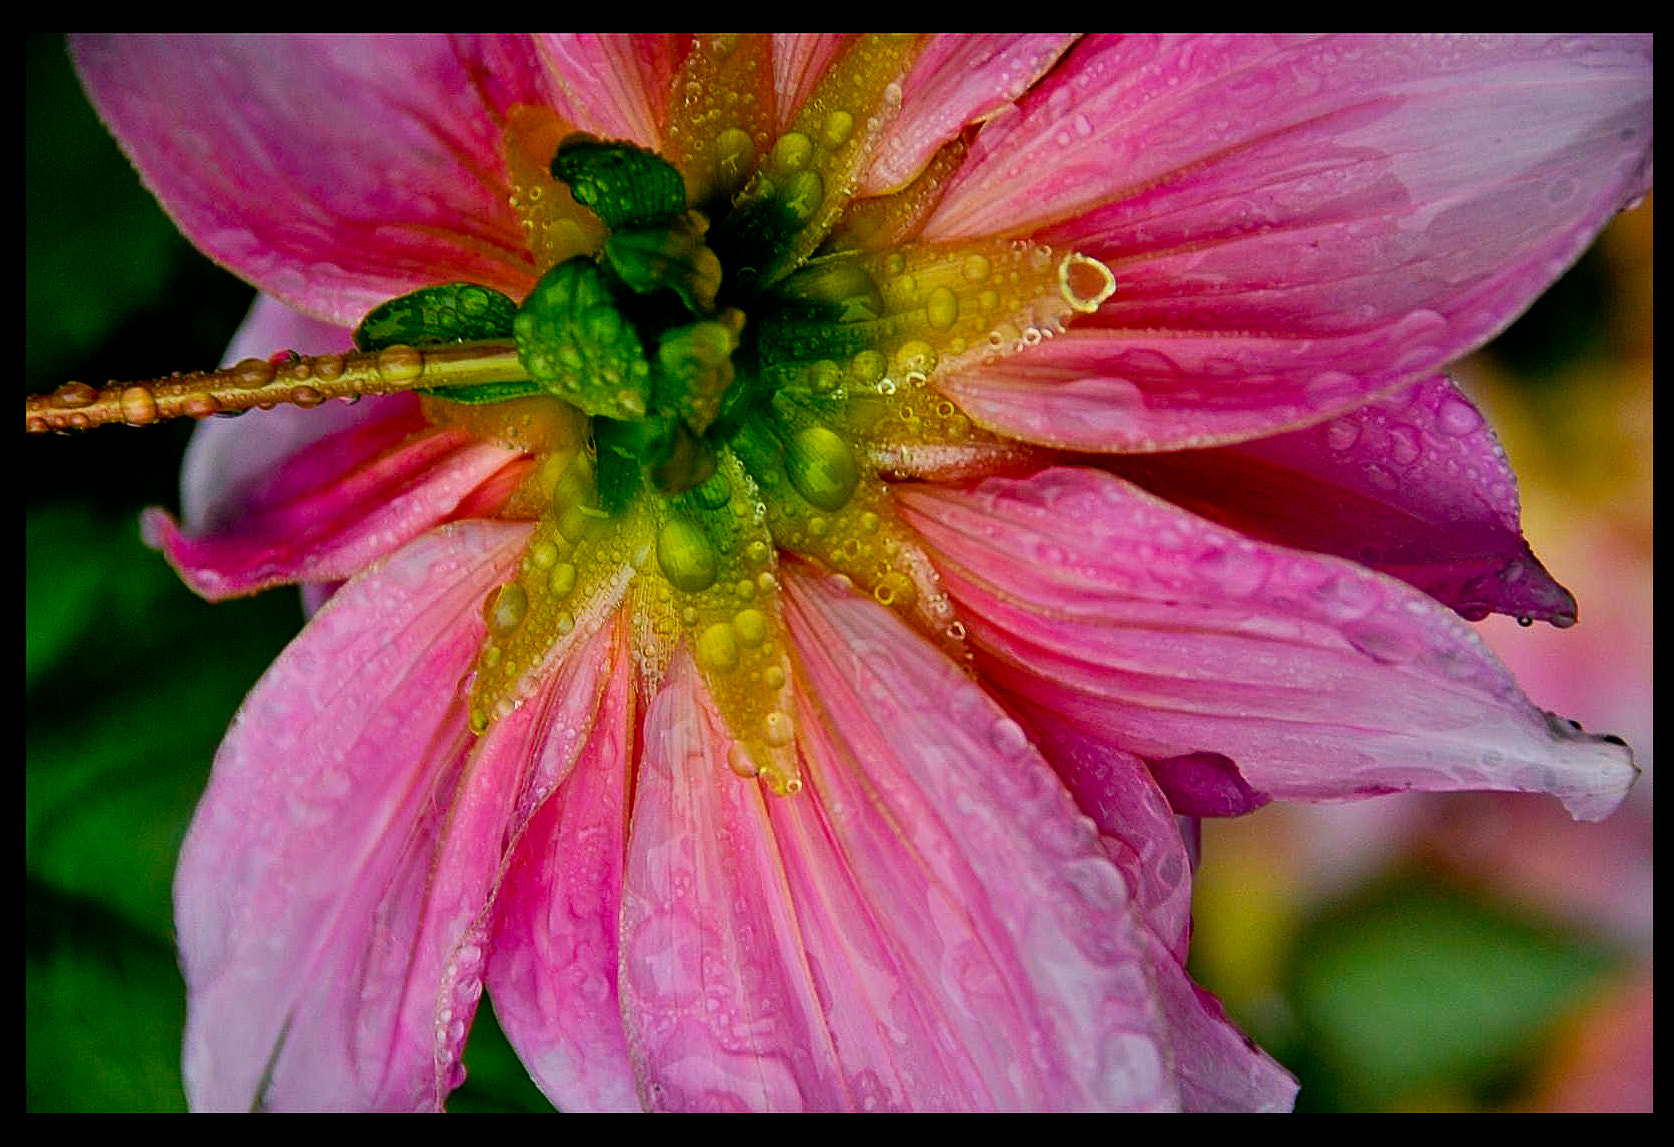 Photograph Pink flower in the rain by Gloria Matyszyk on 500px